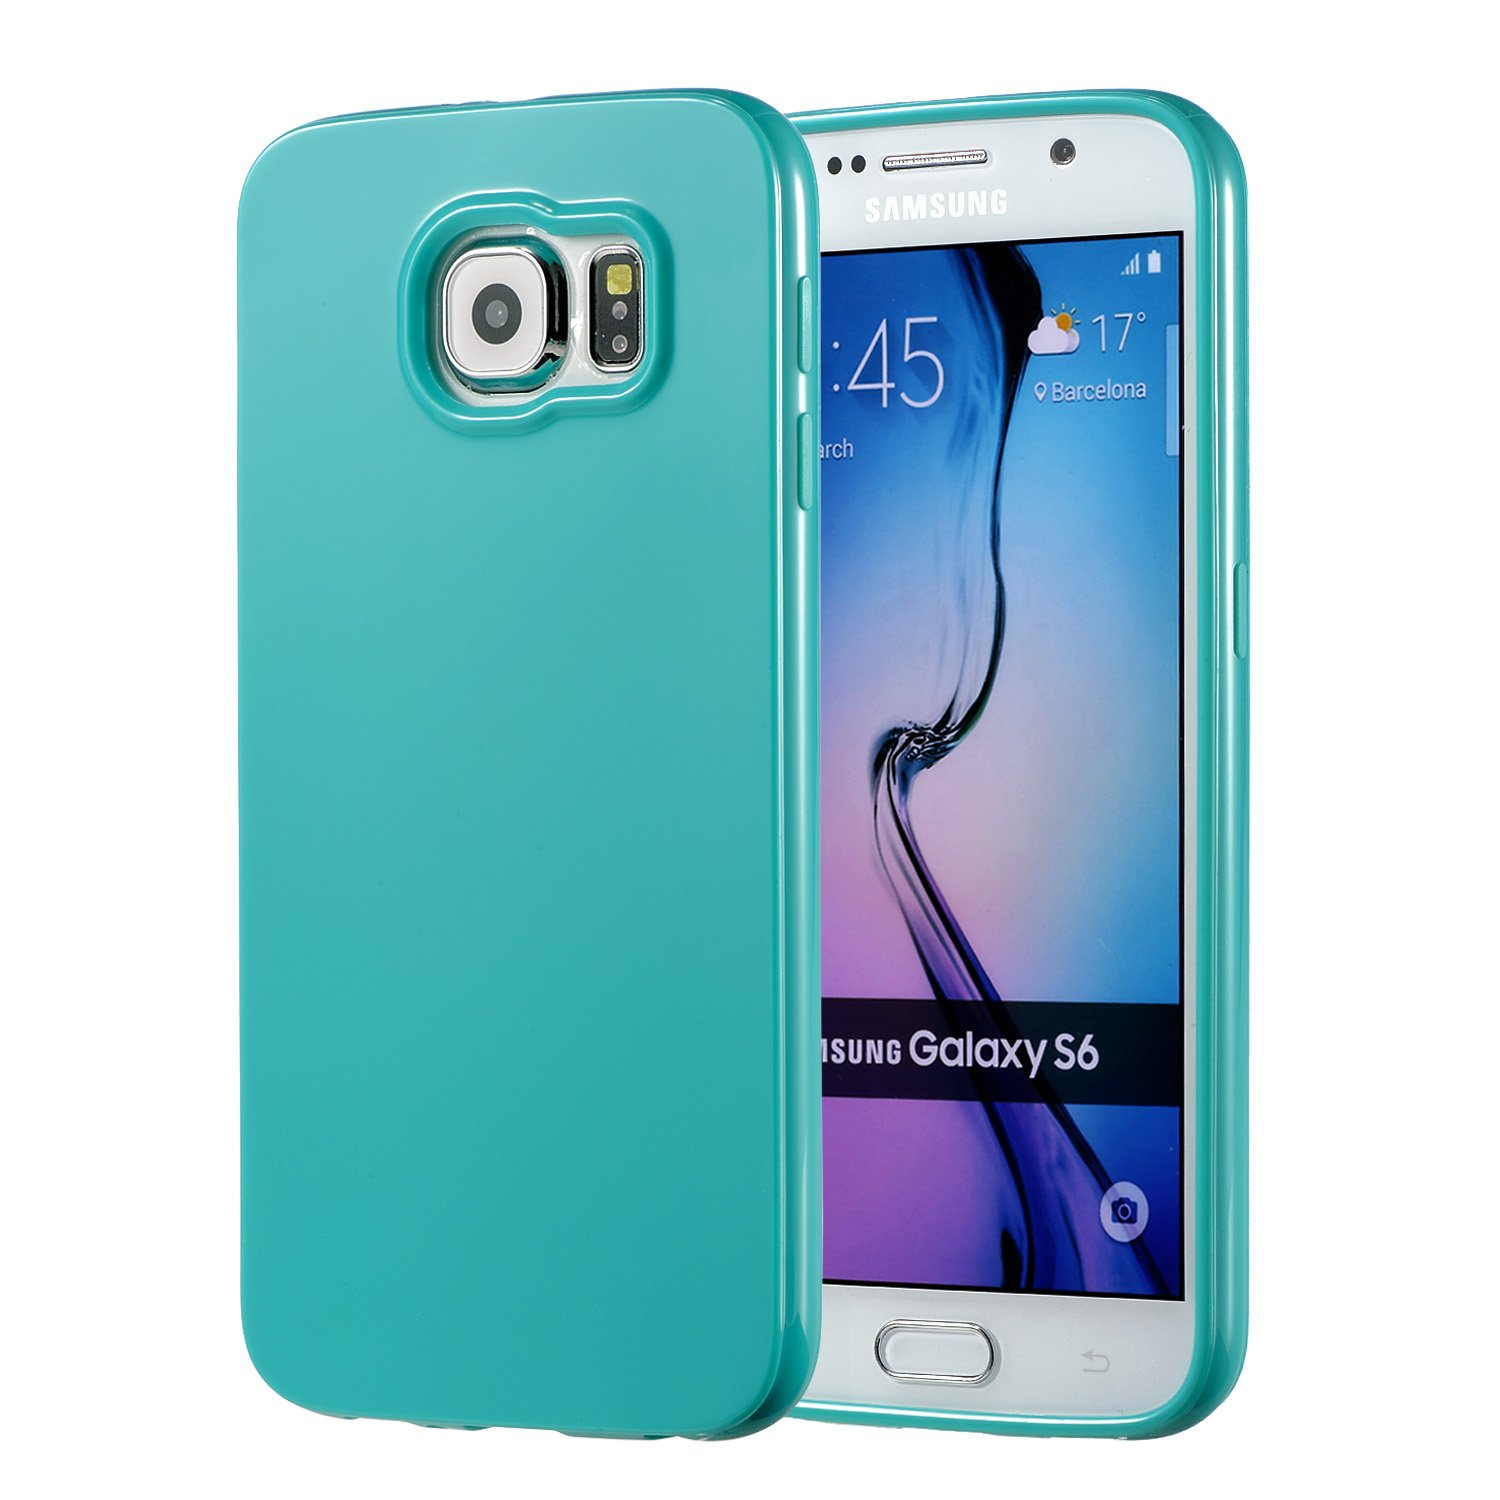 new product 28462 27a05 Galaxy S6 Turquoise Case, technext020 Galaxy S6 Case Silicone Protective  Back Cover Slim Fit Samsung Galaxy S6 Bumper